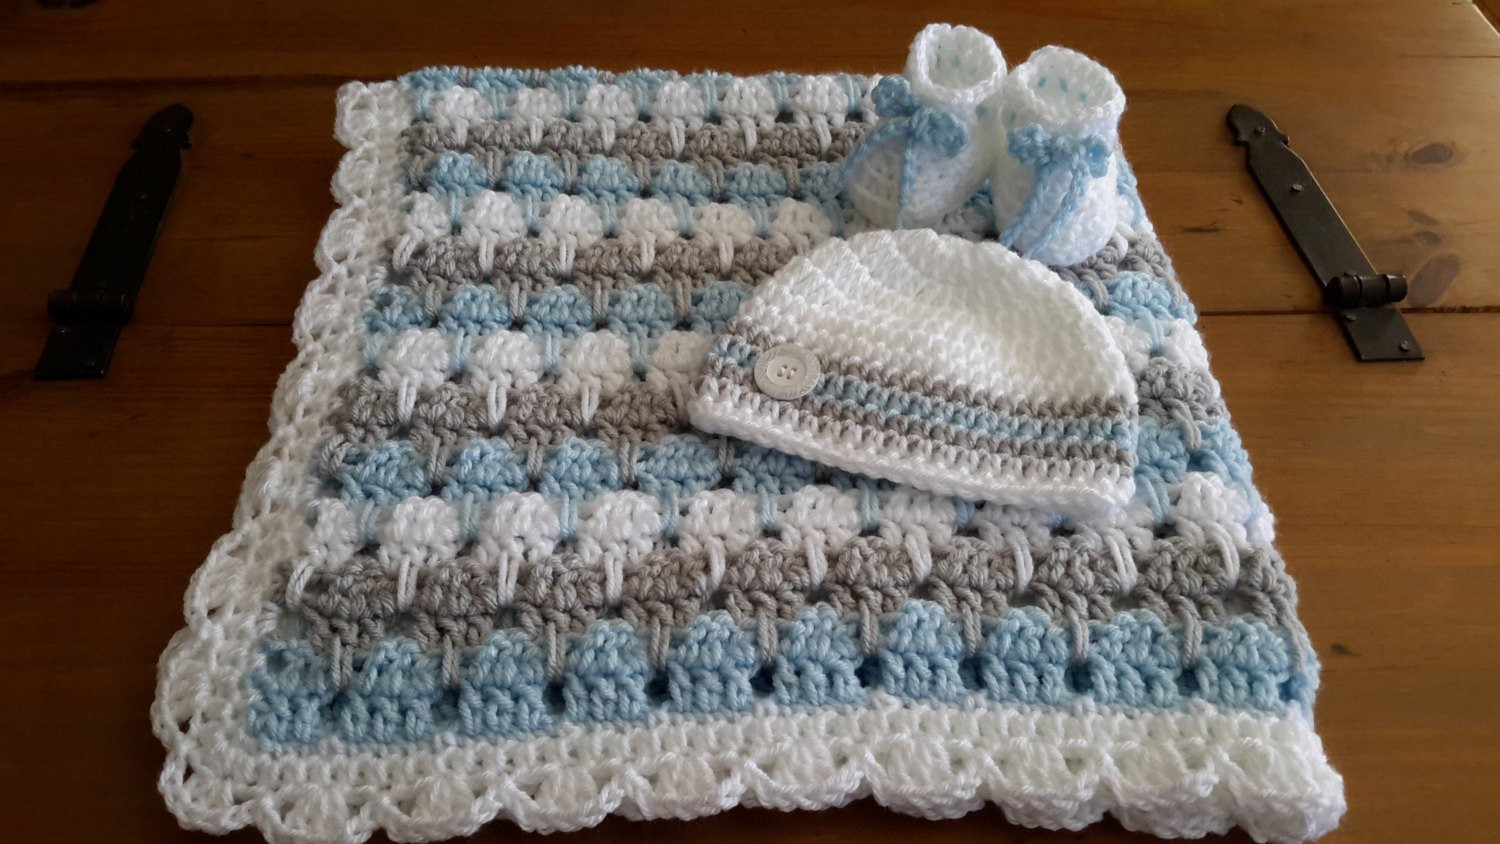 Baby Boy Crochet Blanket Patterns Lovely Baby Boy Blanket Crochet Stripe Crochet Blanket Afghan Of Baby Boy Crochet Blanket Patterns New Free Baby Blanket Crochet Patterns Easy